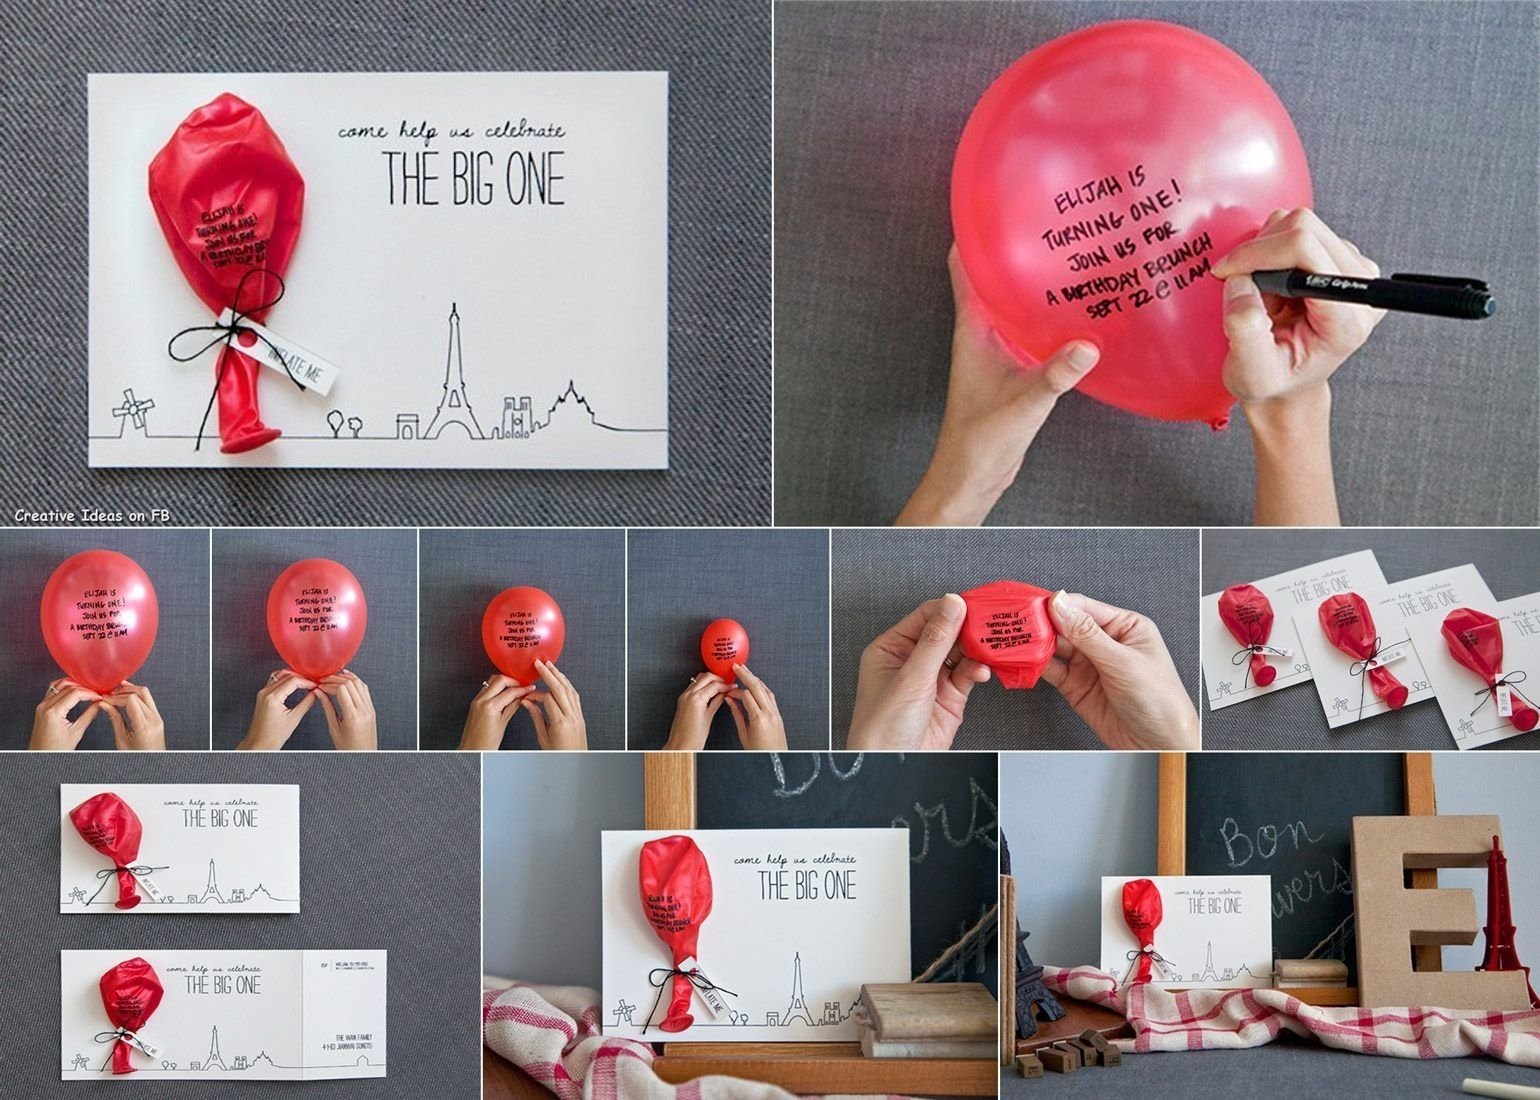 10 lovely creative birthday gift ideas for boyfriend 24 diy creative ideas handmade birthday gifts birthday